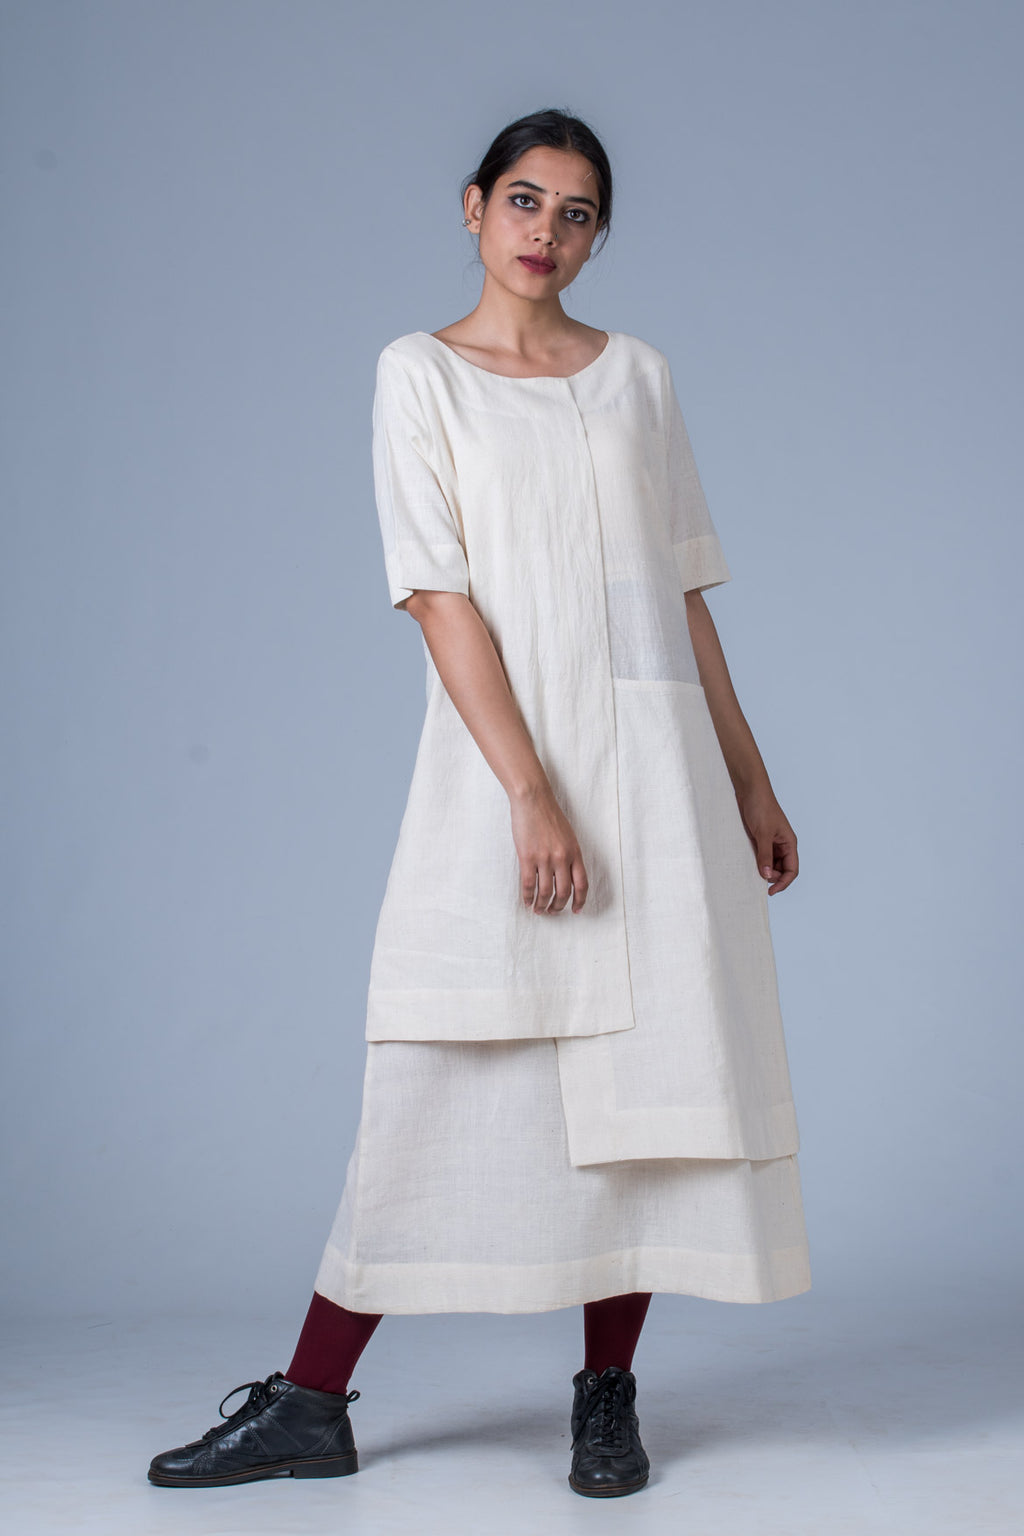 Offwhite Khadi Dress - SANGYA